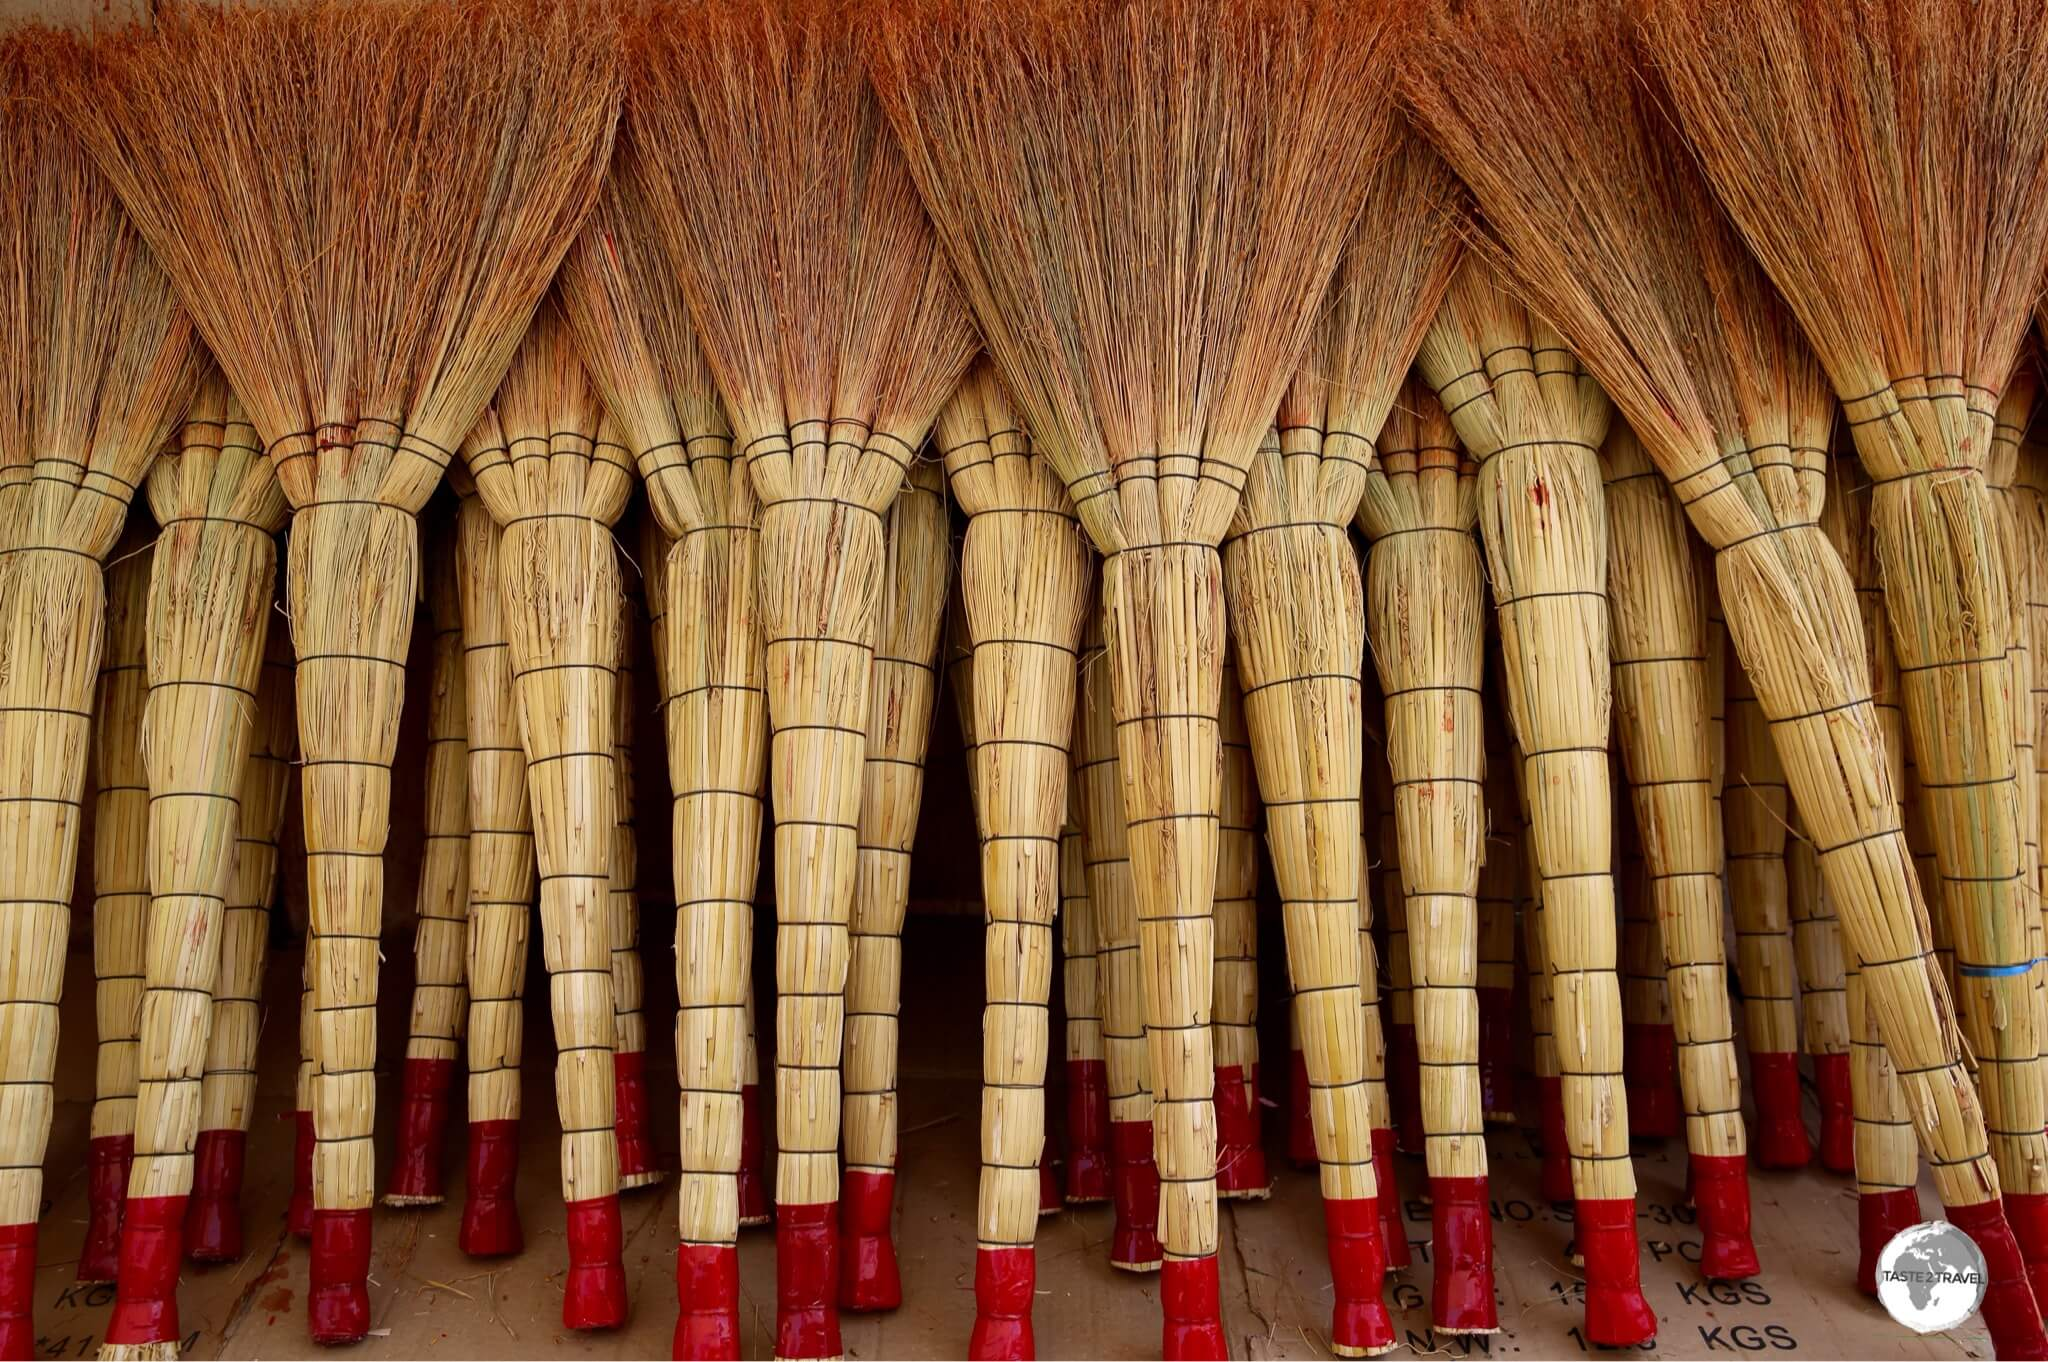 Handmade brooms for sale at the sprawling Osh bazaar.